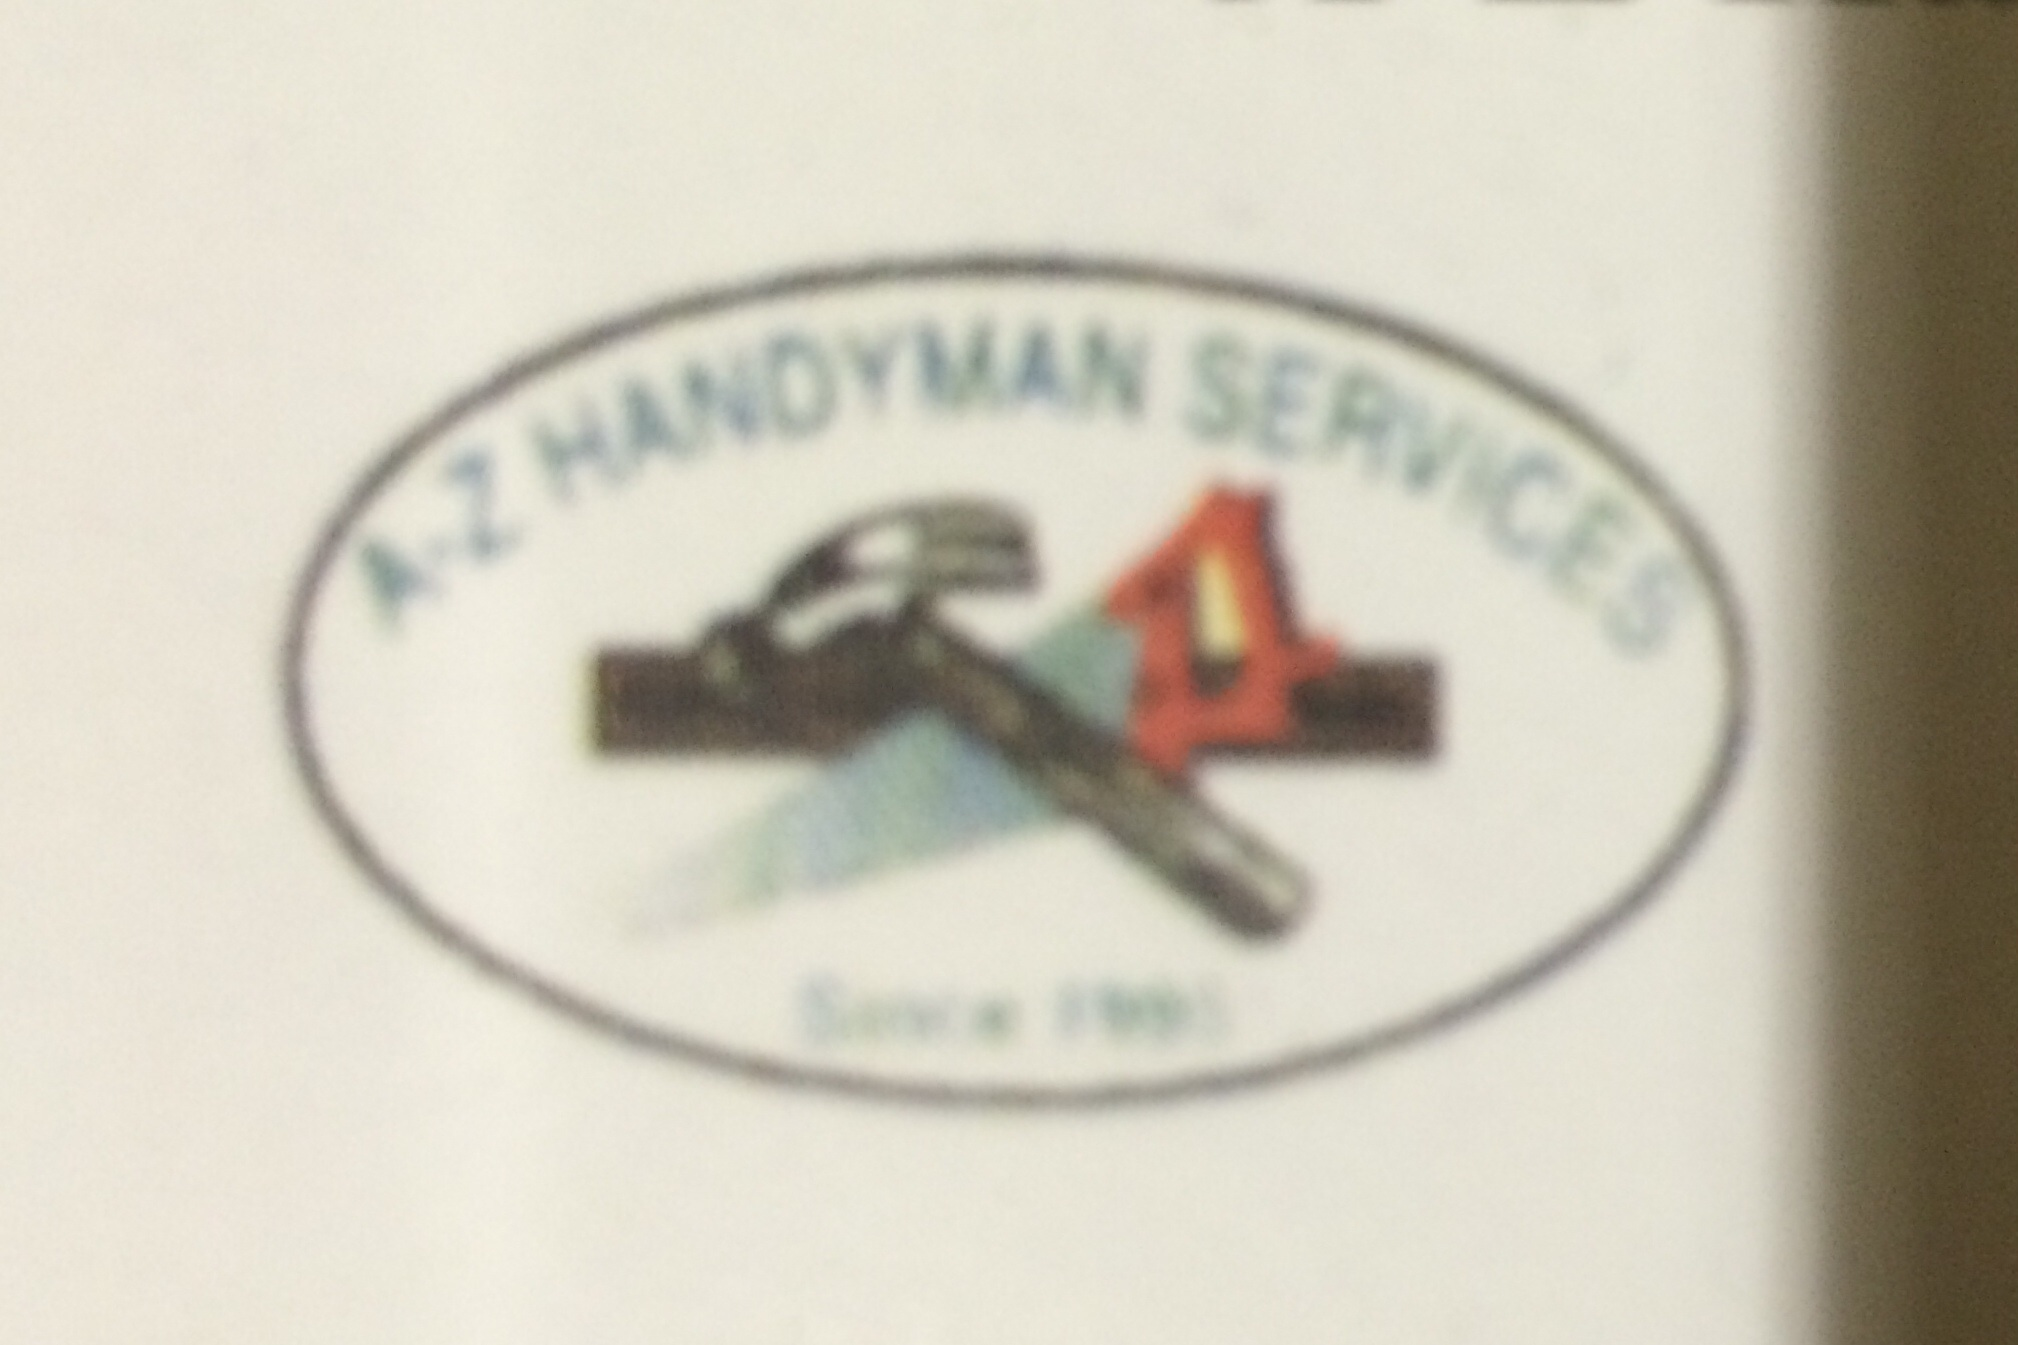 a-zhandyman services inc Photo